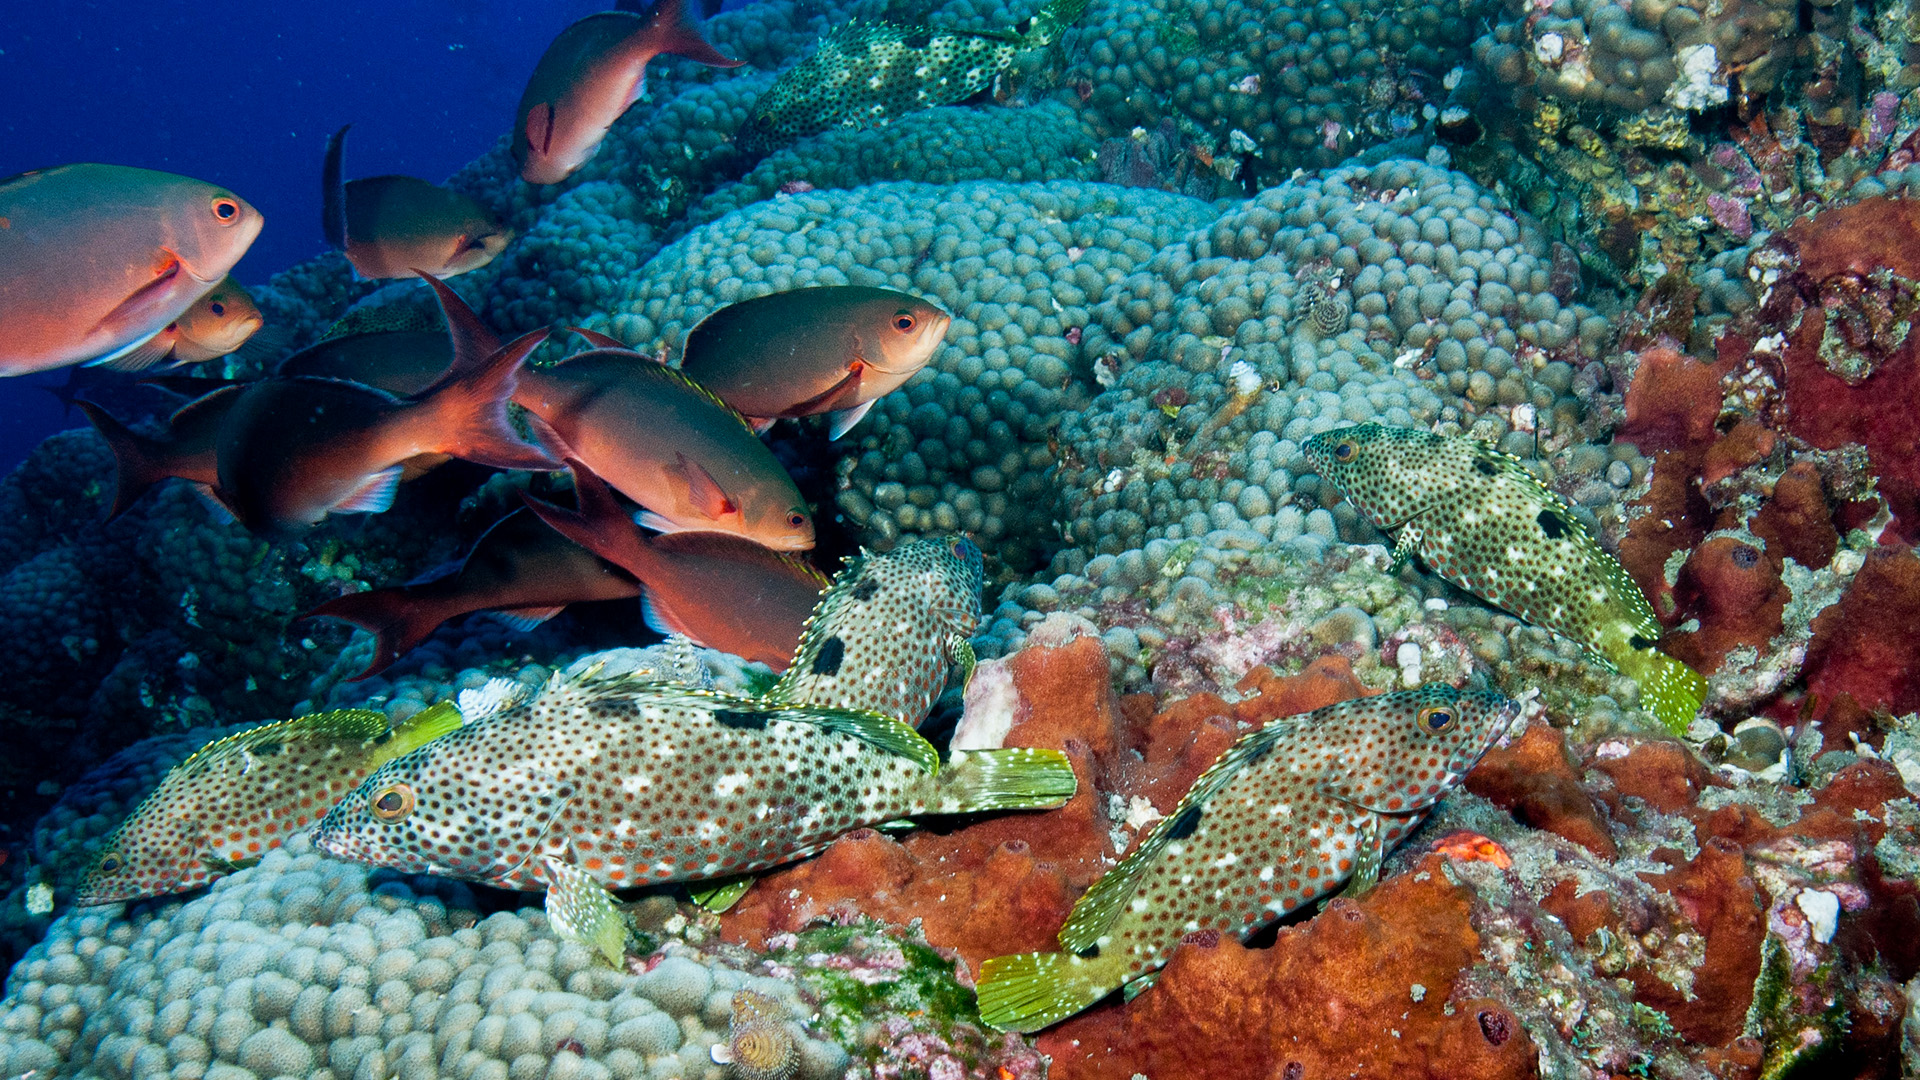 Study Suggests Venom Contributed To Formation Of New Fish, Insect Species